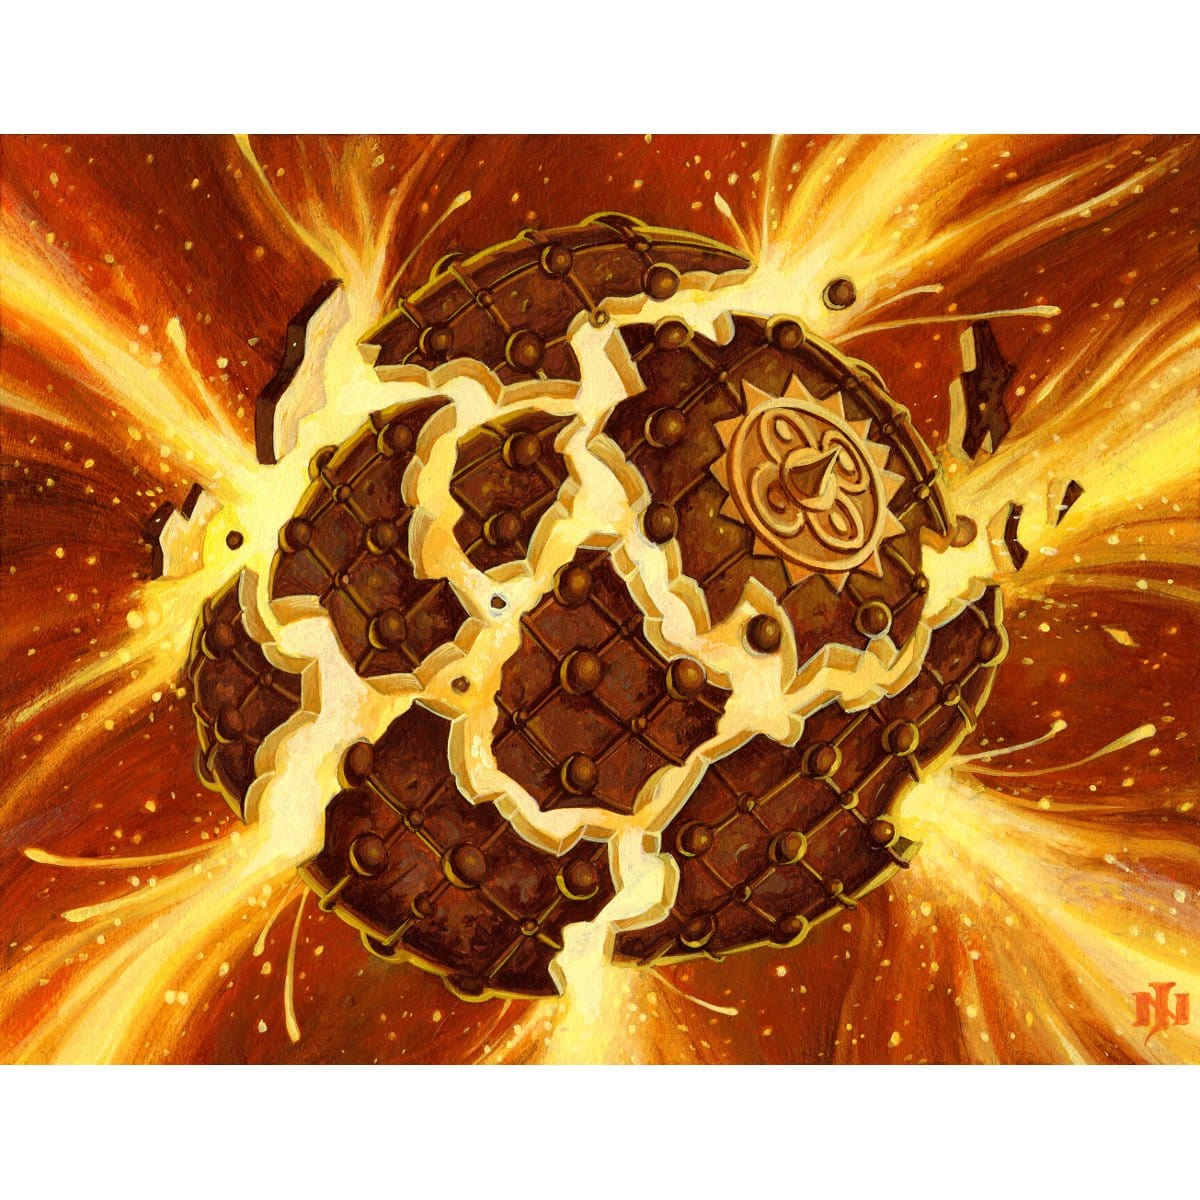 Pyrite Spellbomb Print - Print - Original Magic Art - Accessories for Magic the Gathering and other card games